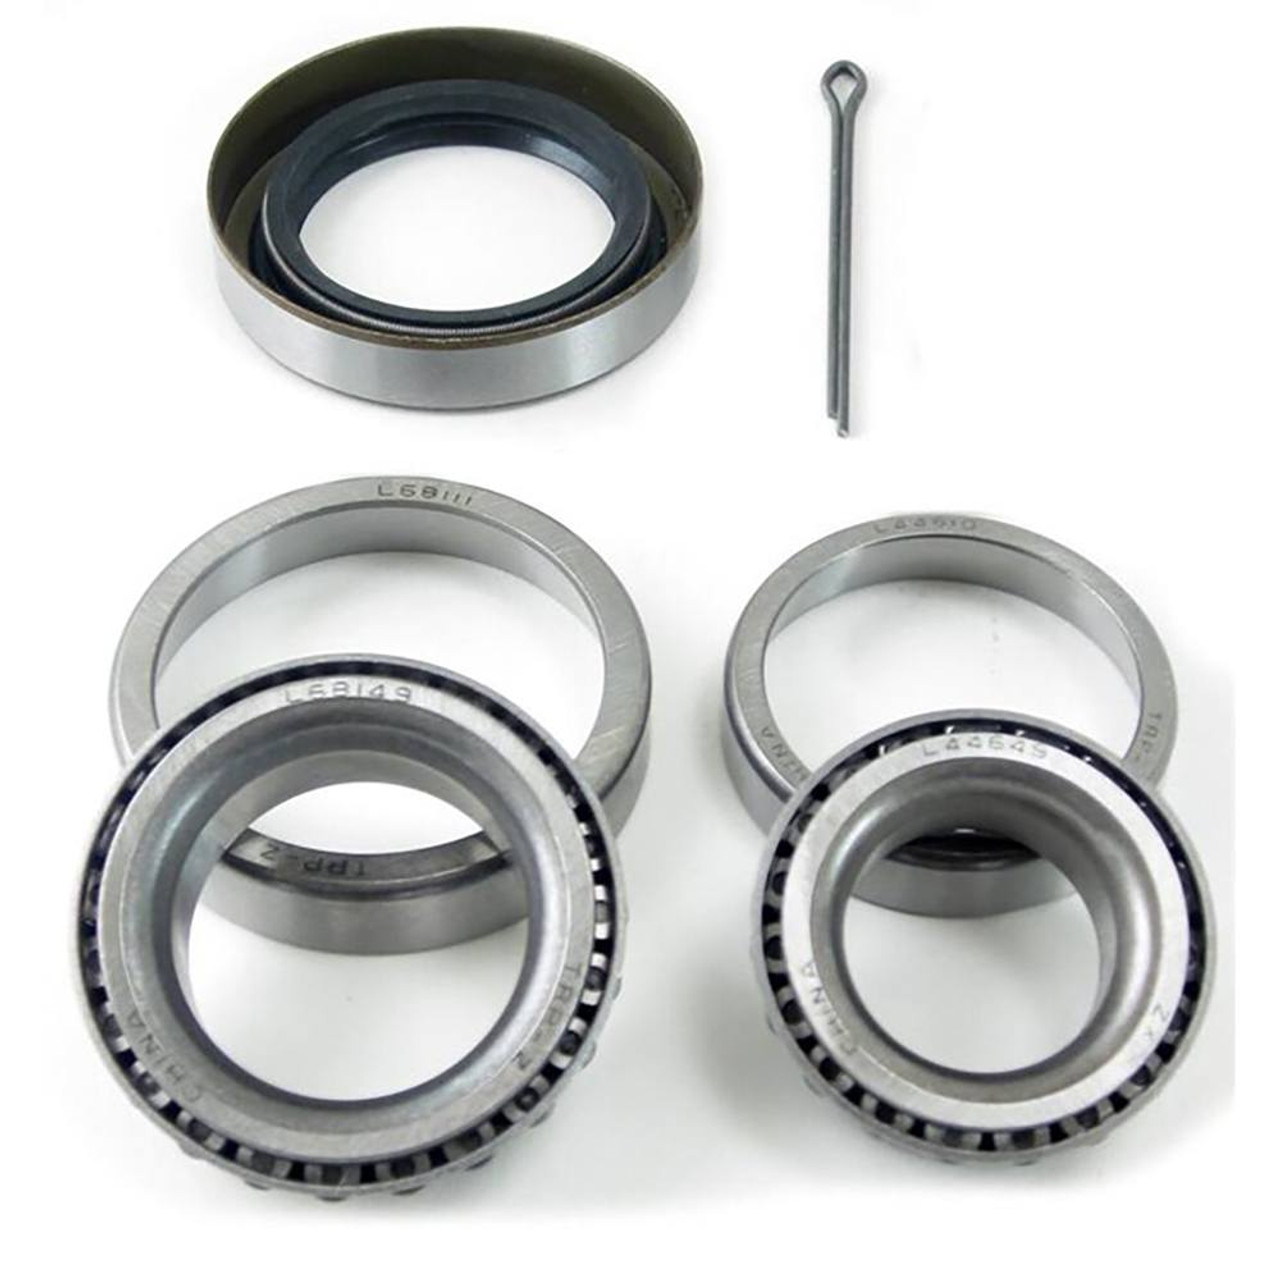 Bearing Kit: L44649 and L68149 Bearings with L44610 and L68111 Races - Seal and Pins included